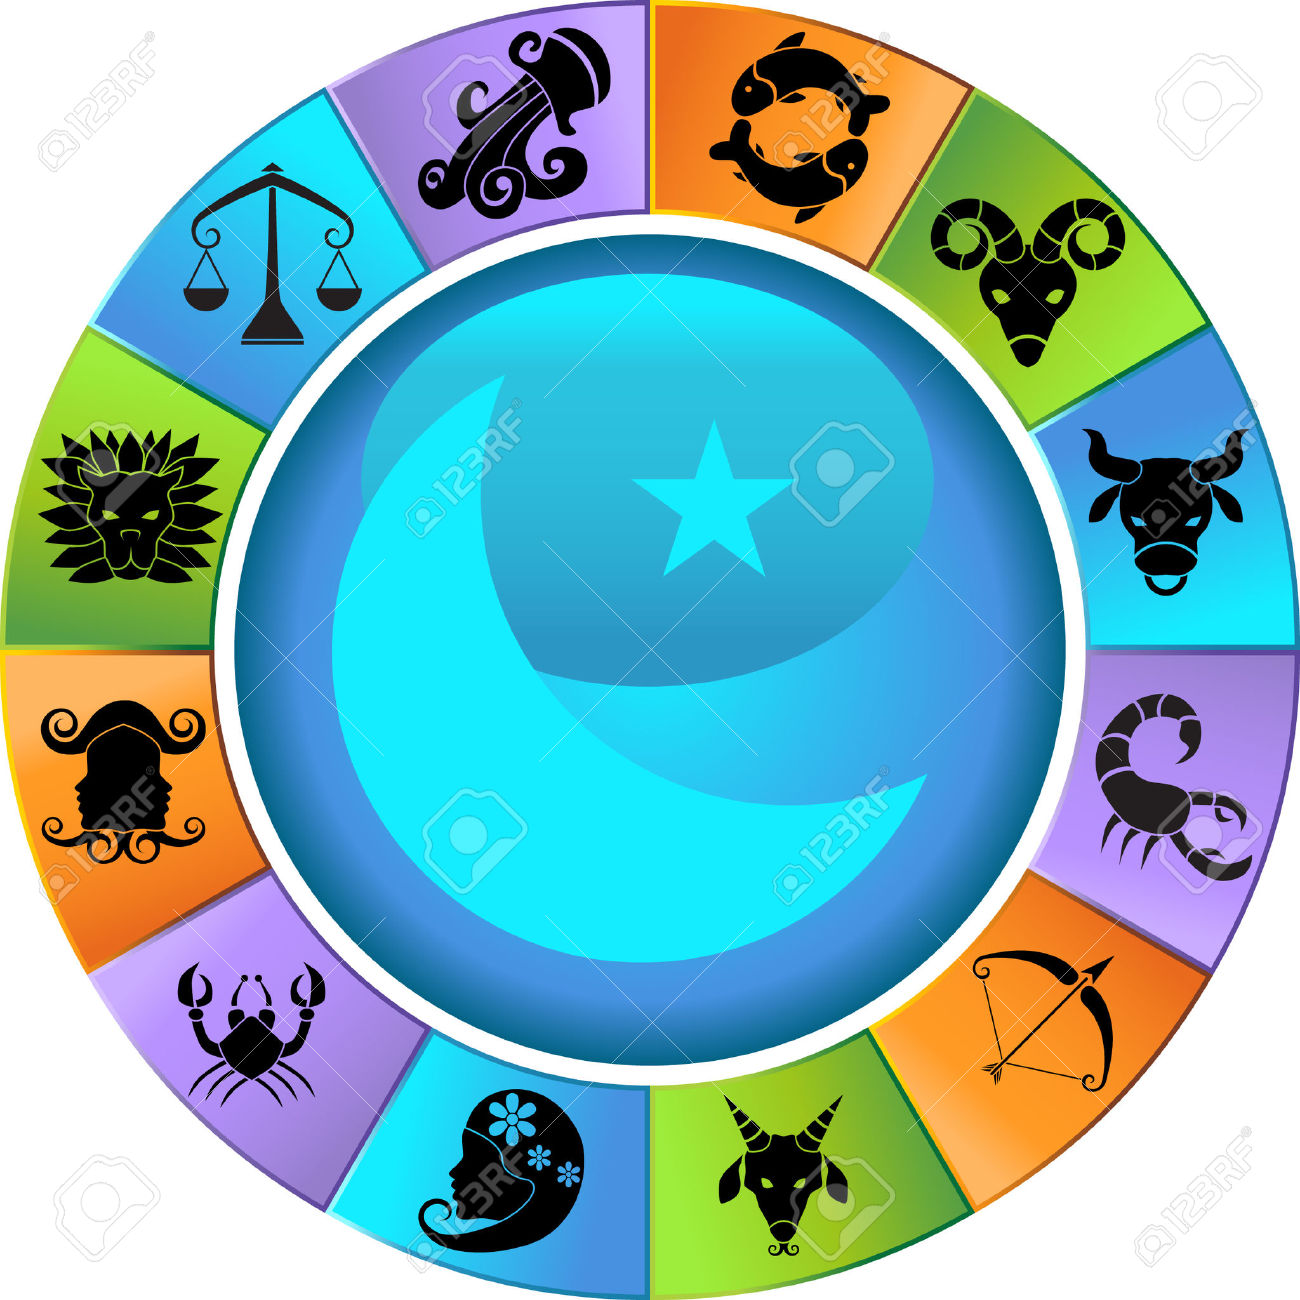 Horoscopes - Tarot